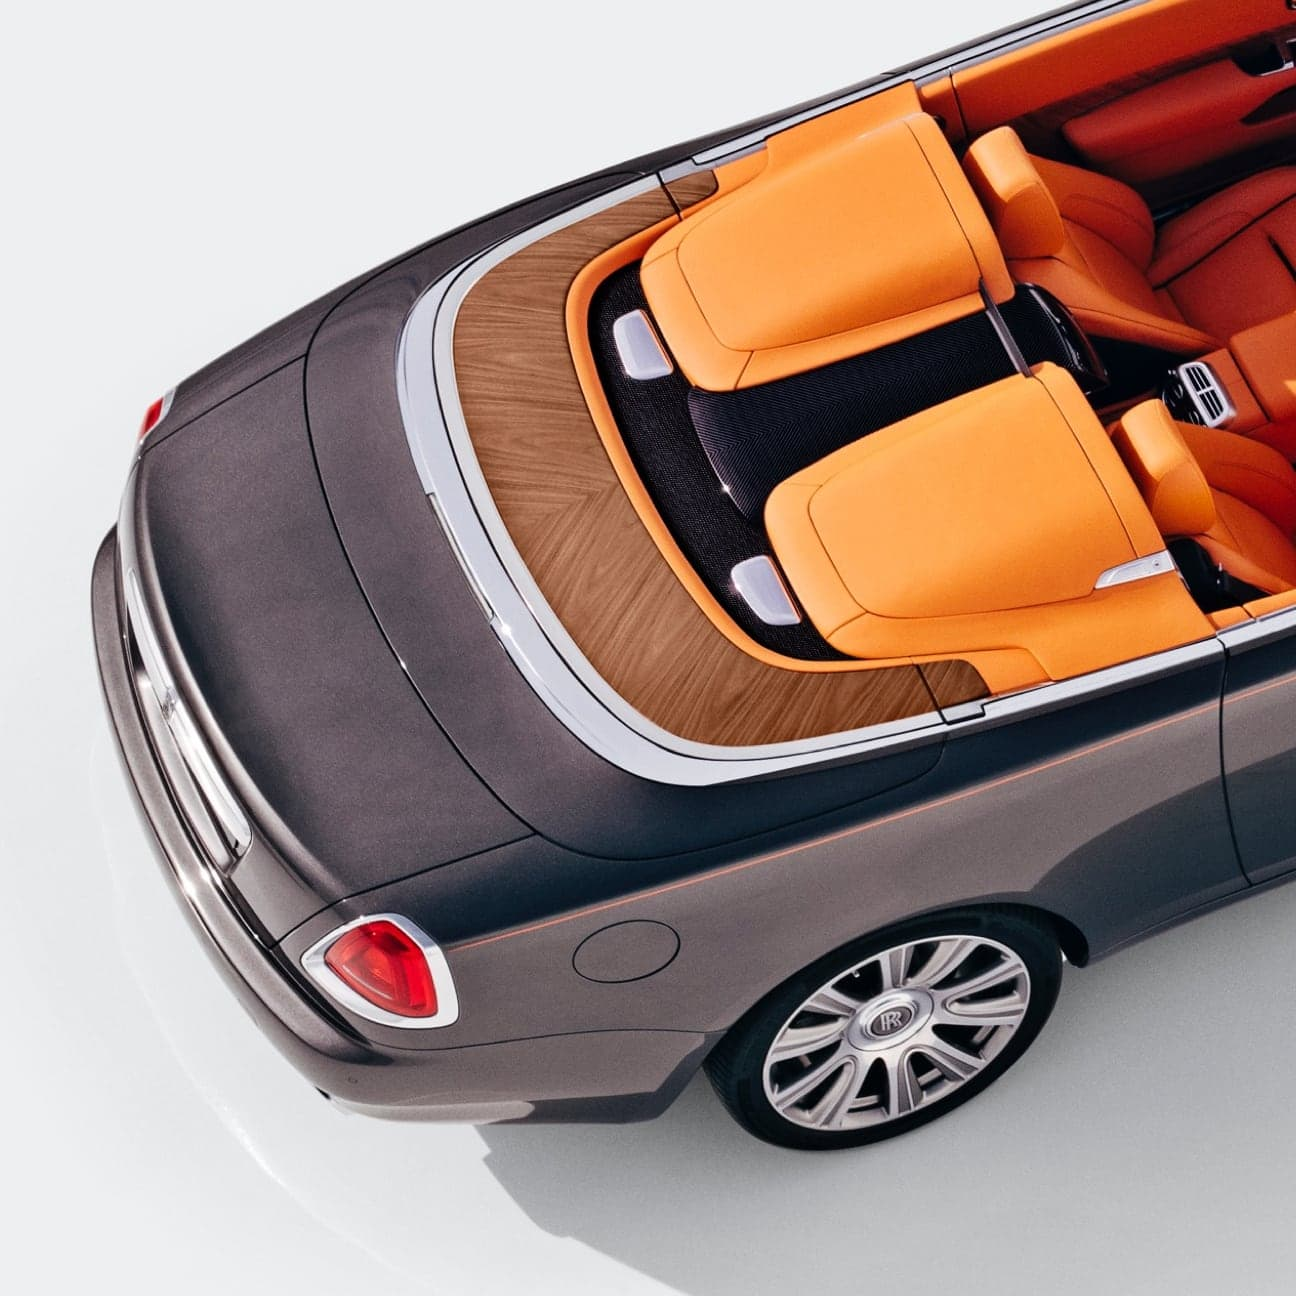 Indulge the senses with Dawn Aero Cowling, the tonneau cover – the ultimate two-seater, open-top driving experience by Rolls-Royce Motor Cars.